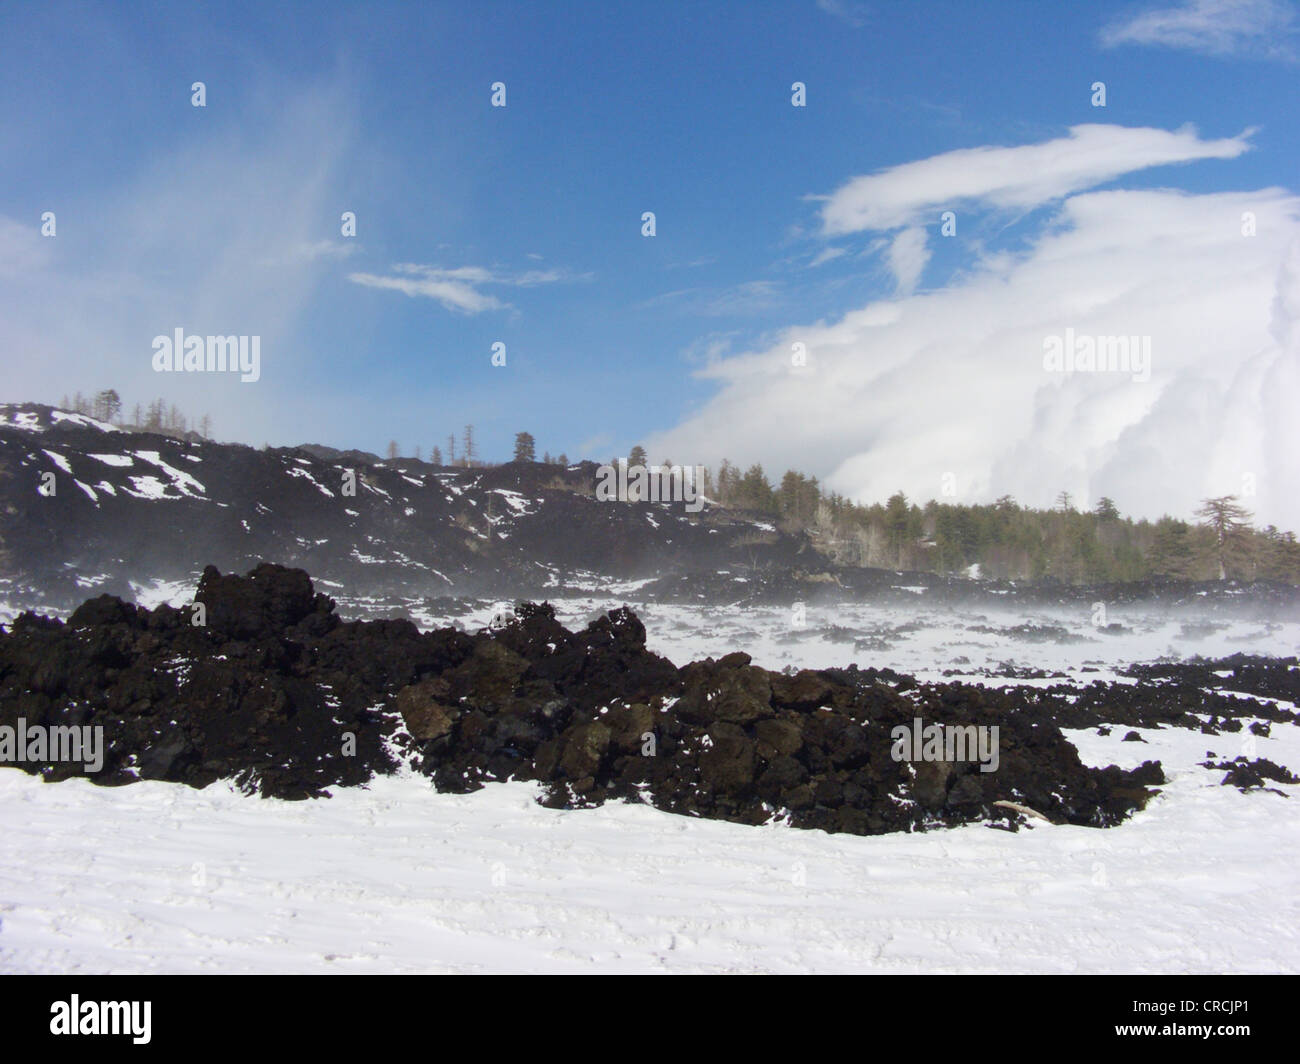 lava fields with snow at the North of Mount Etna at Monte Conca, Italy, Sicilia - Stock Image